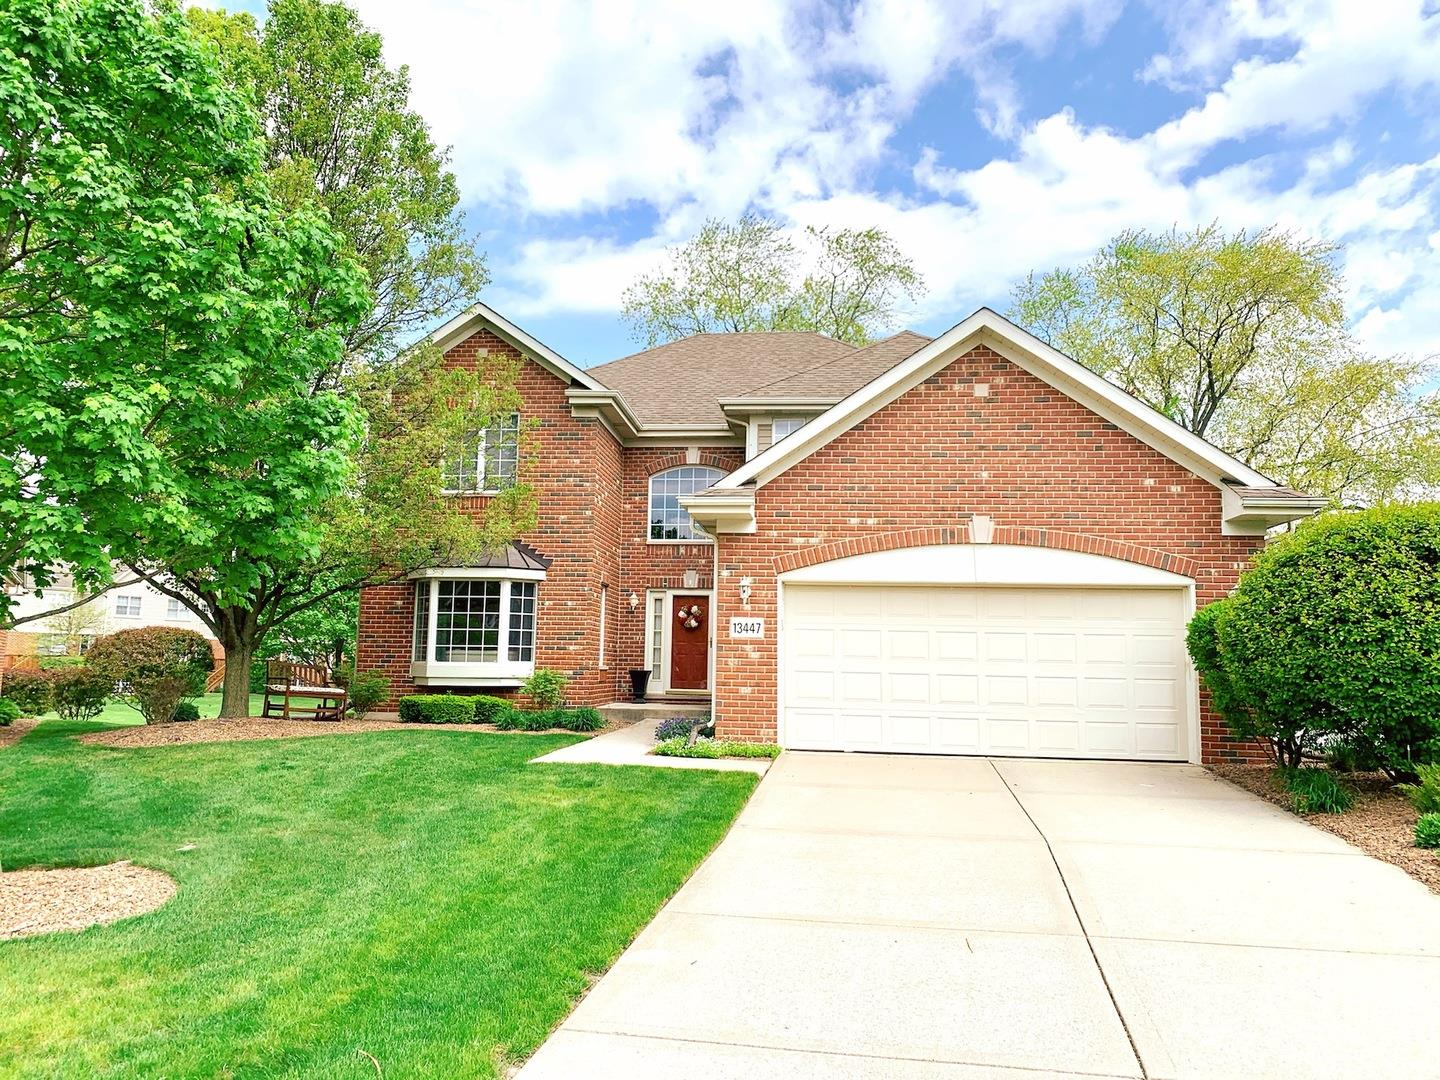 13447 Cove Court, Palos Heights, IL 60463 - #: 11082746